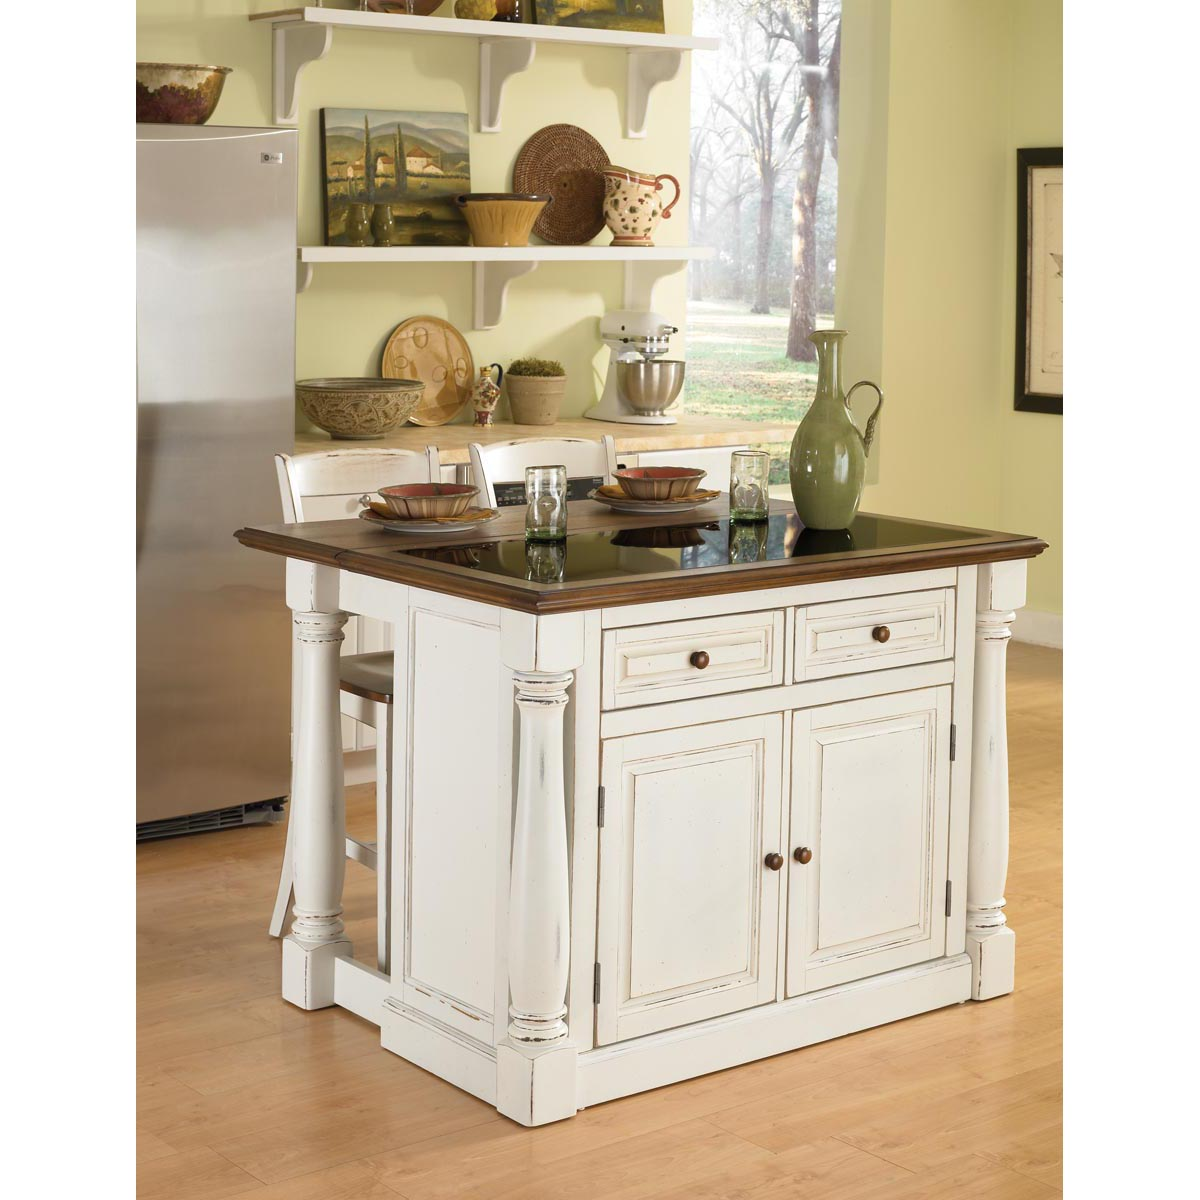 Gracewood Hollow Ellison Antiqued White Kitchen Island with Granite Top and 2 Stools